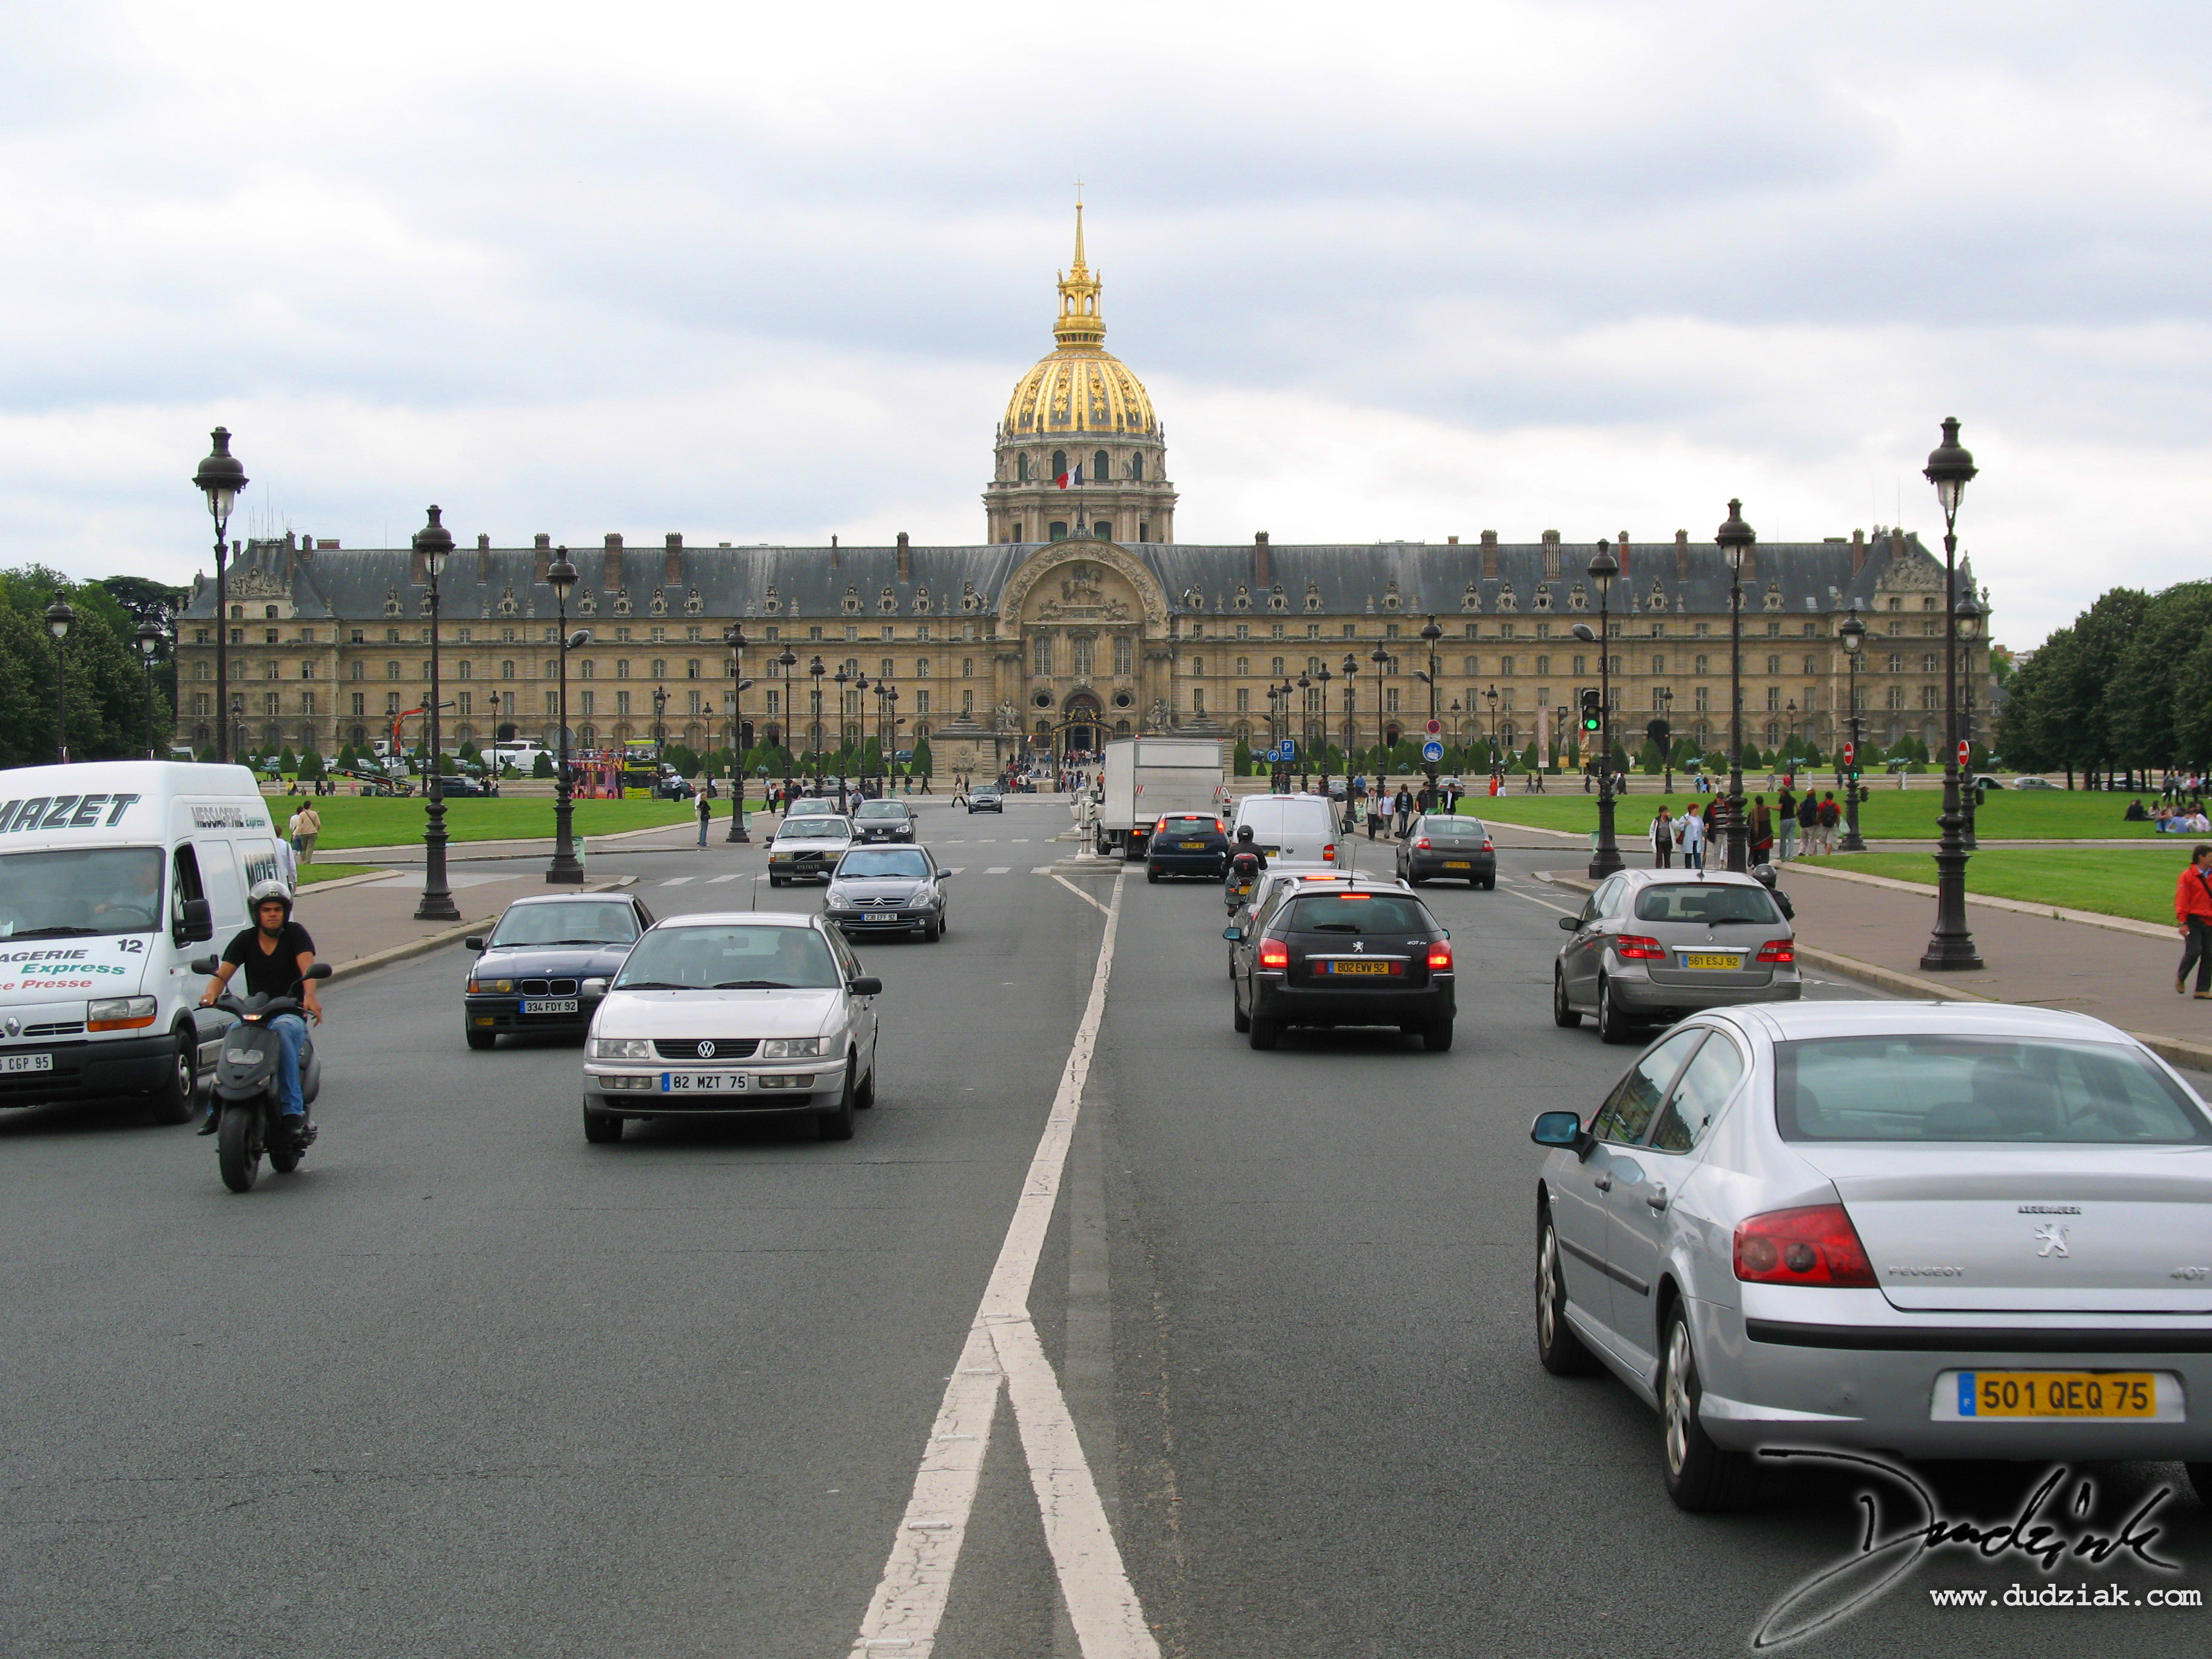 Paris France,  Military Museum,  Avenue de General Galland,  Les Invalides